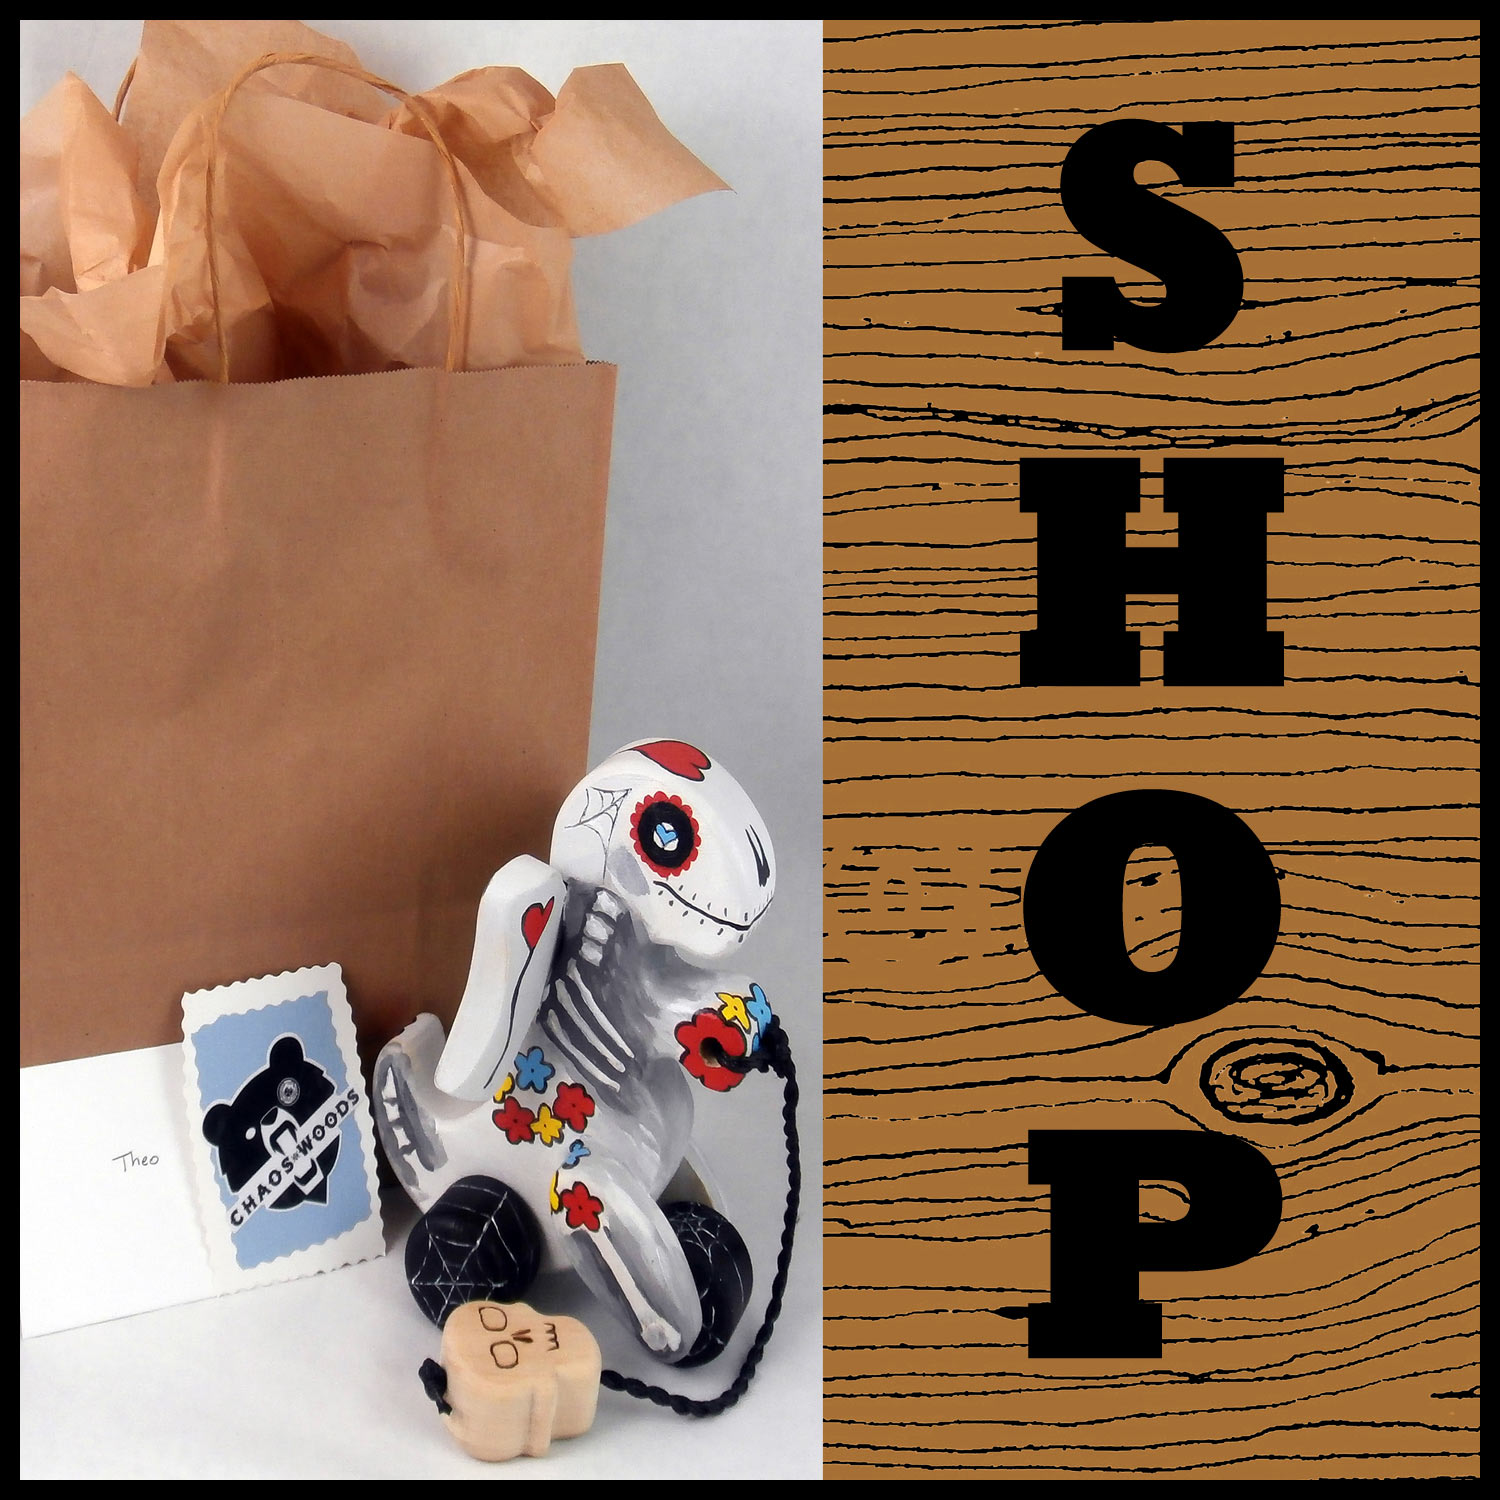 Shop: Support our small business with a purchase from our store. If you see something you like, it's probably for sale.